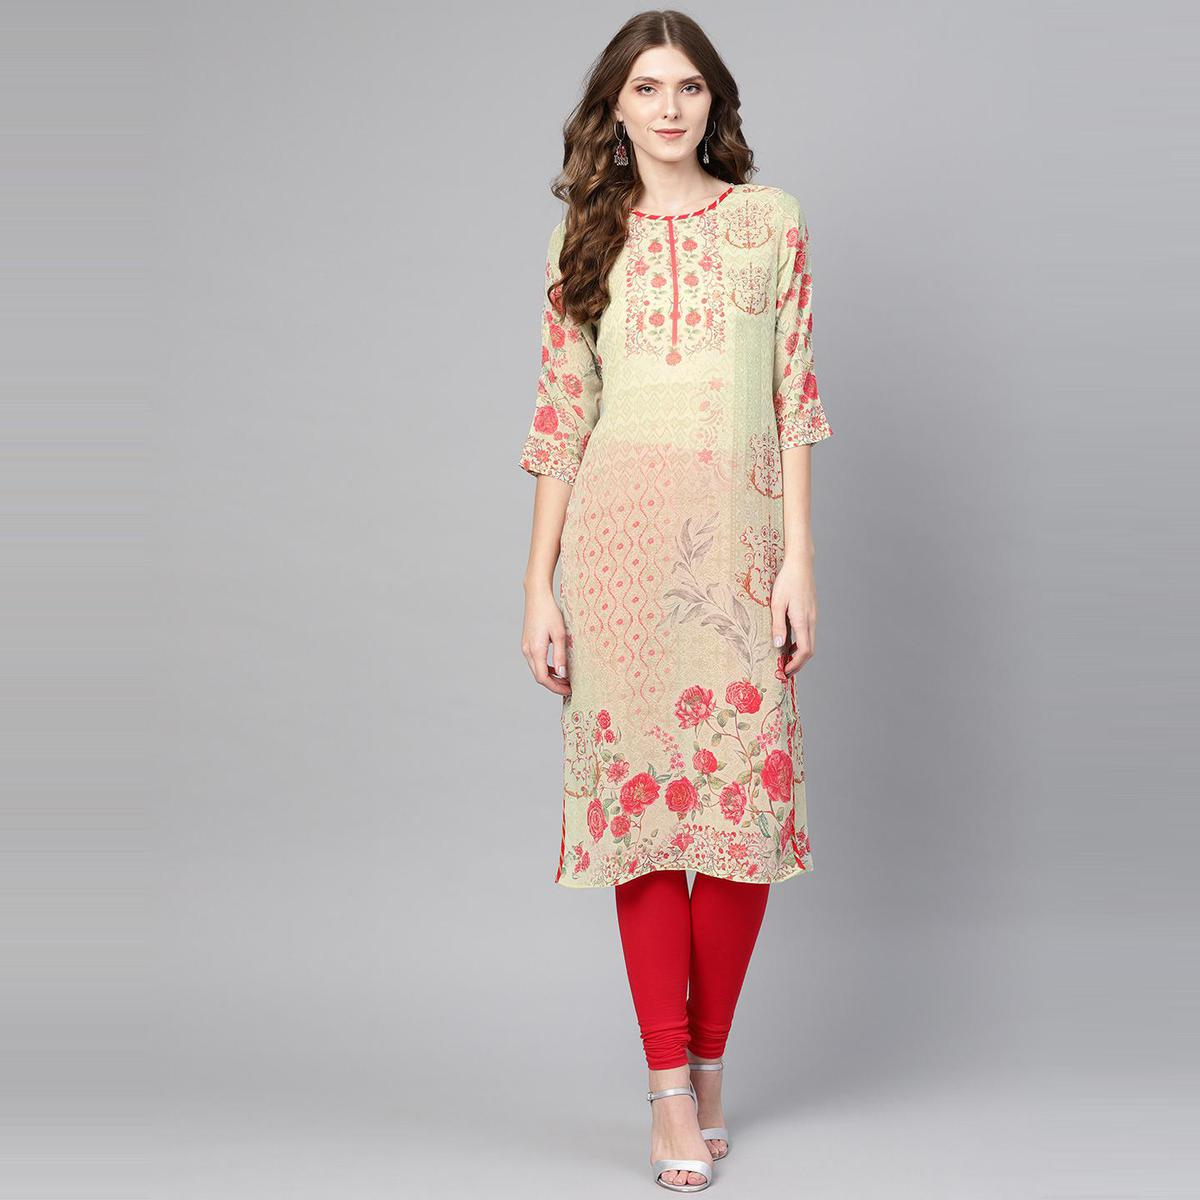 AHALYAA - Green Colored Casual Printed Georgette Straight Kurta for Women